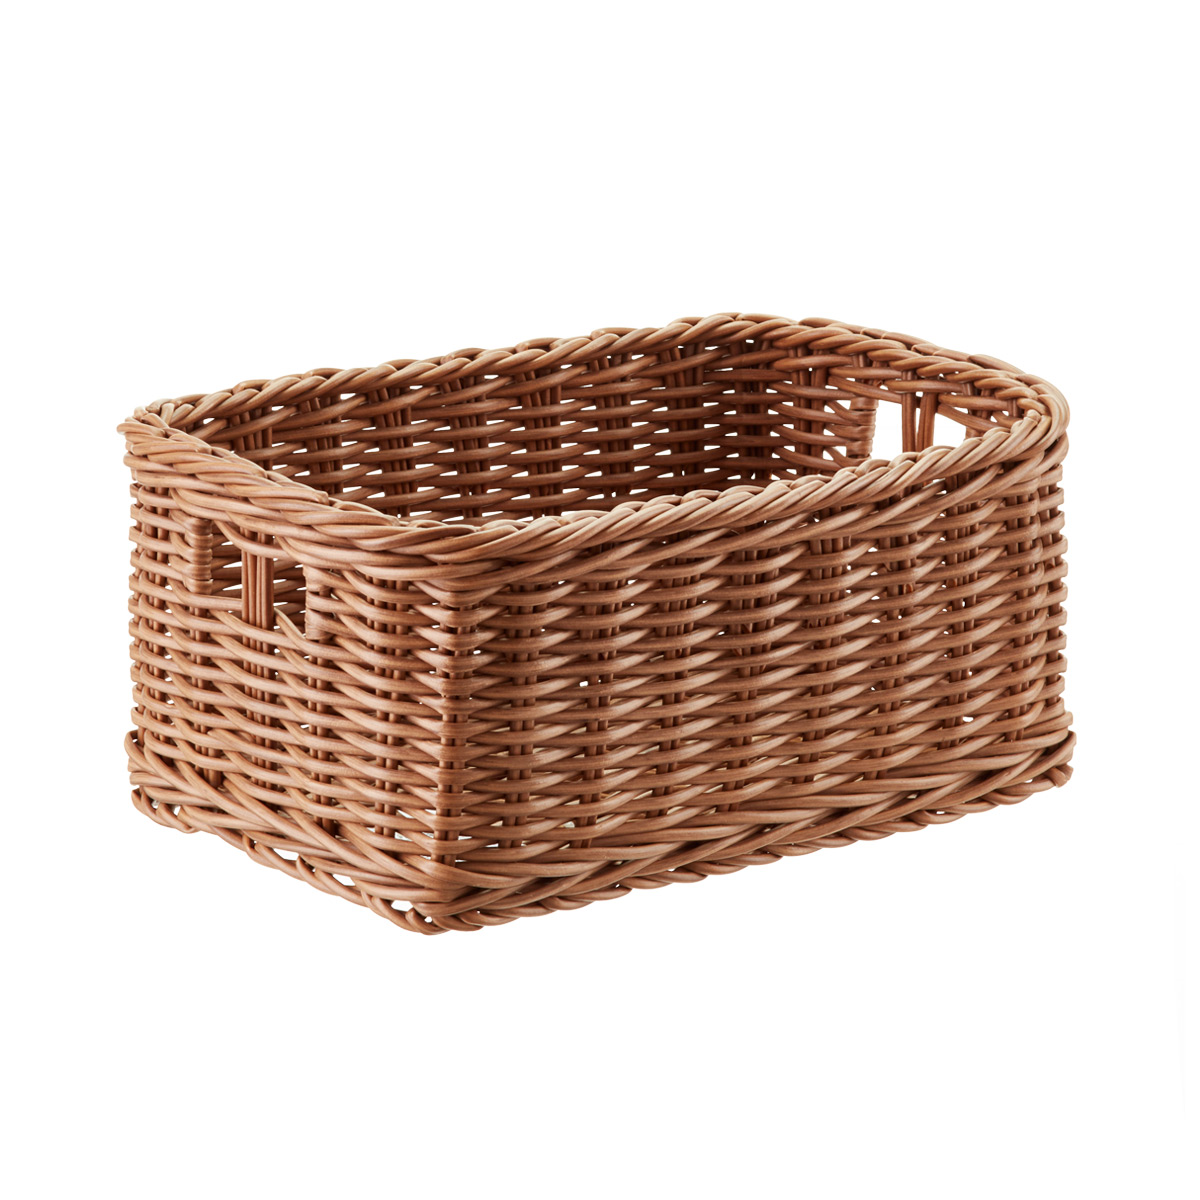 Delicieux Plastic Wicker Storage Bin With Handles